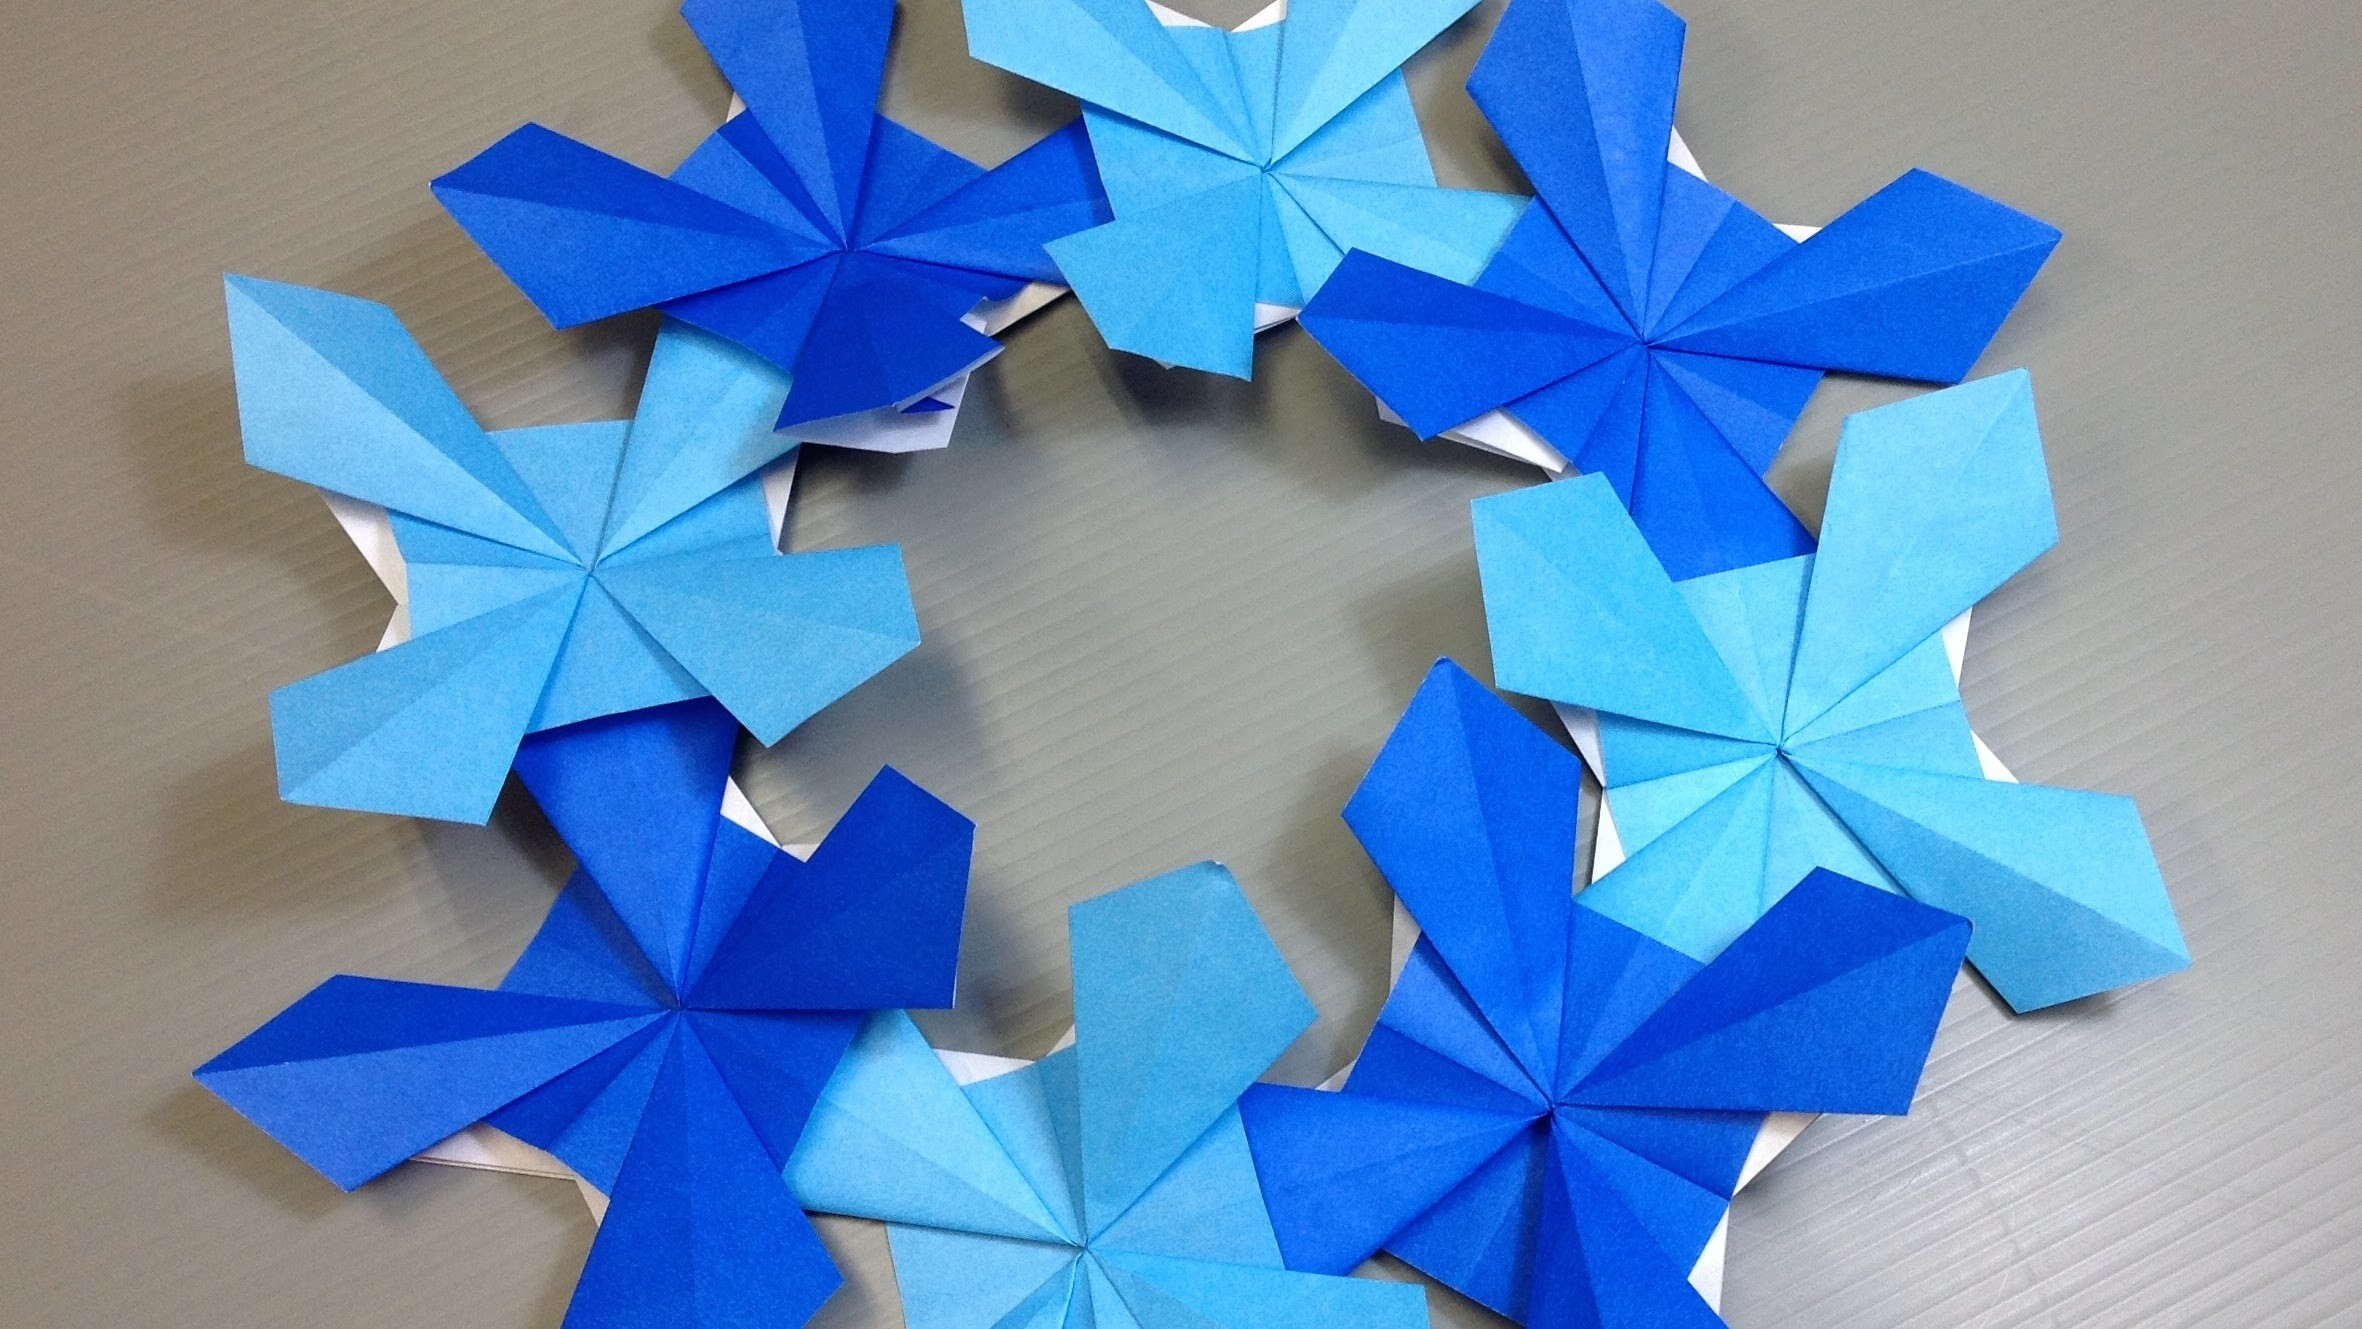 Origami Corn Flower Wreath or Coaster for Spring!